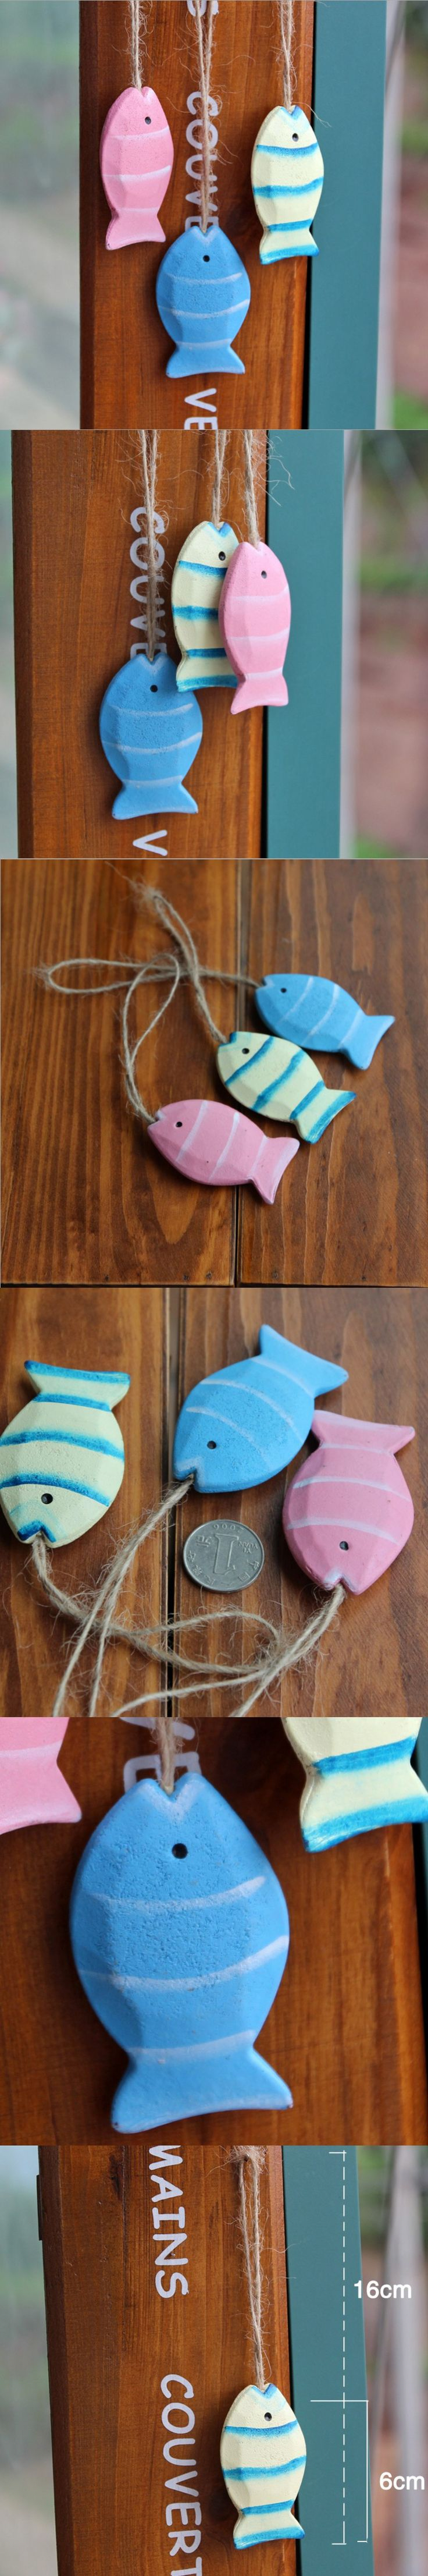 Mediterranean Style Wood Fish Hanging Ornament Zakka Kids Rooms Wall Decoration Vintage Home Decor Wooden Craft 2Pcs/Lot GY015 $14.8